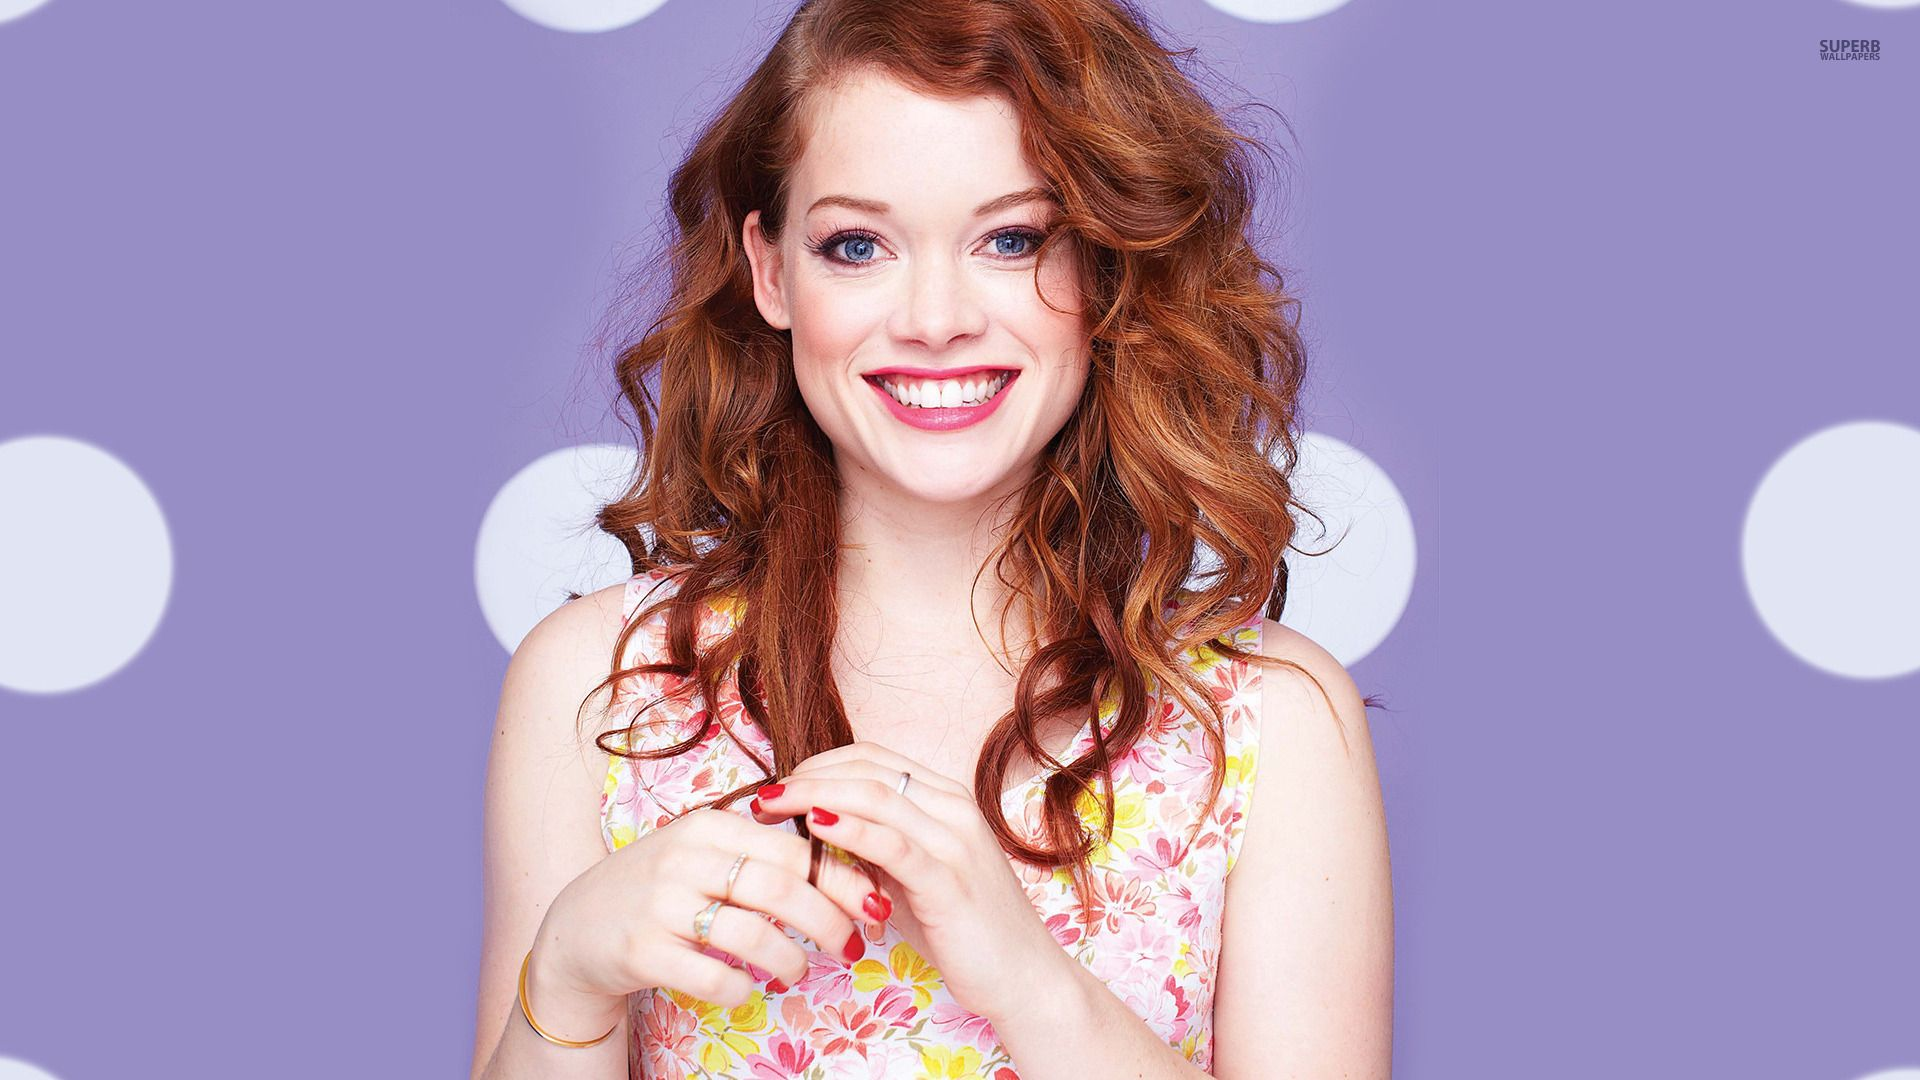 jane levy twin peaksjane levy instagram, jane levy gif, jane levy evil dead, jane levy vk, jane levy twin peaks, jane levy fan site, jane levy as mandy milkovich, jane levy suburgatory, jane levy twitter, jane levy site, jane levy gif hunt, jane levy milkovich, jane levy boyfriend 2016, jane levy gallery, jane levy photoshoot, jane levy tv shows, jane levy don't breathe, jane levy singing, jane levy wikipedia, jane levy wiki